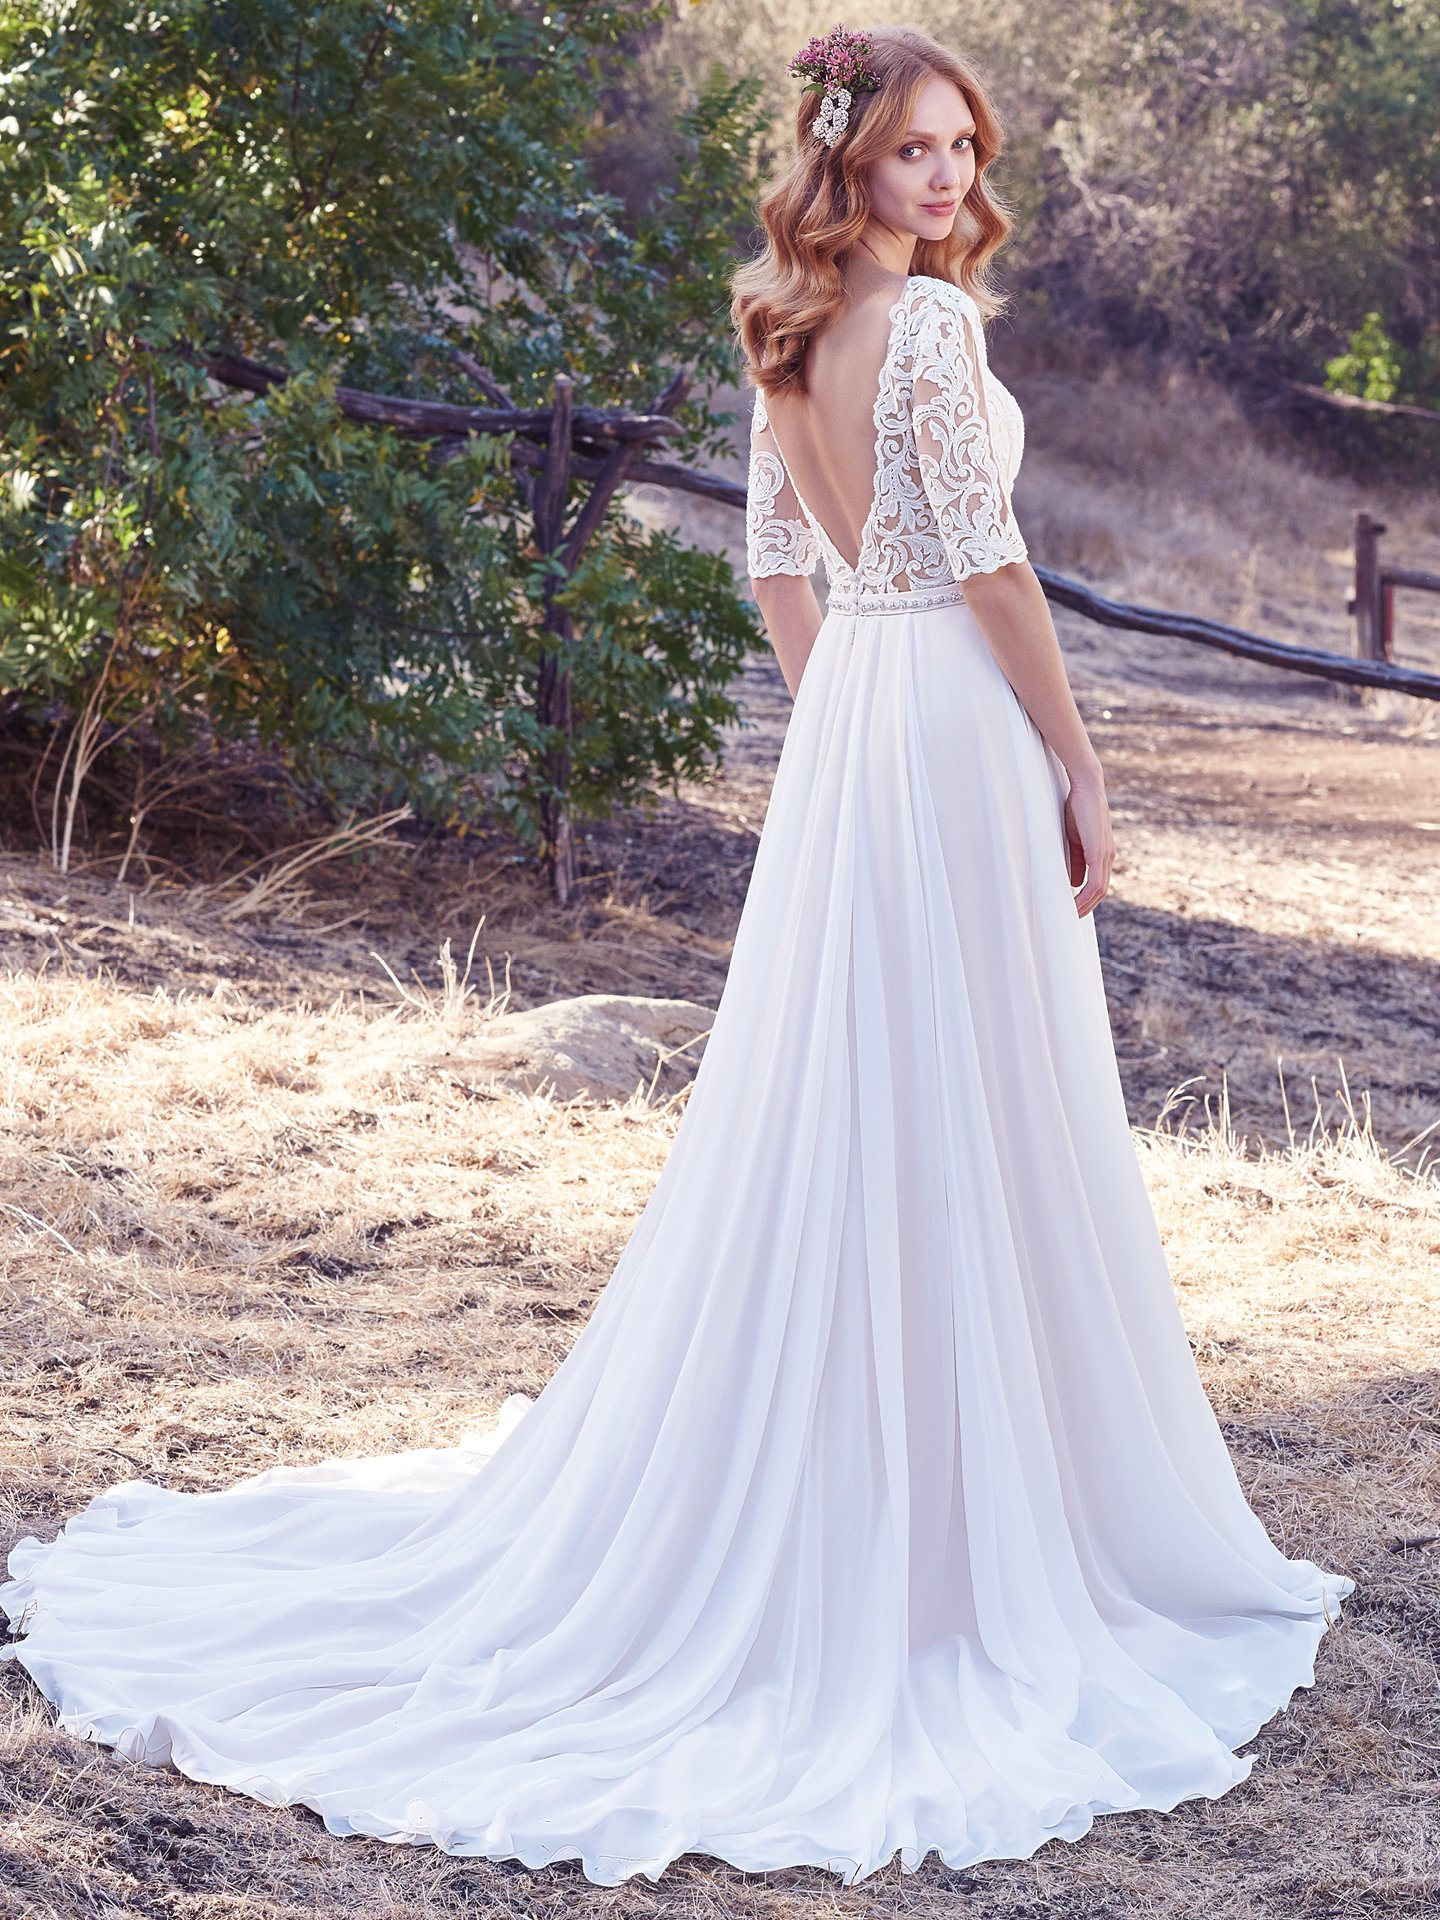 Ivory Over Blush Wedding Dress By Maggie Sottero Colorful Dresses For The Bold Bride